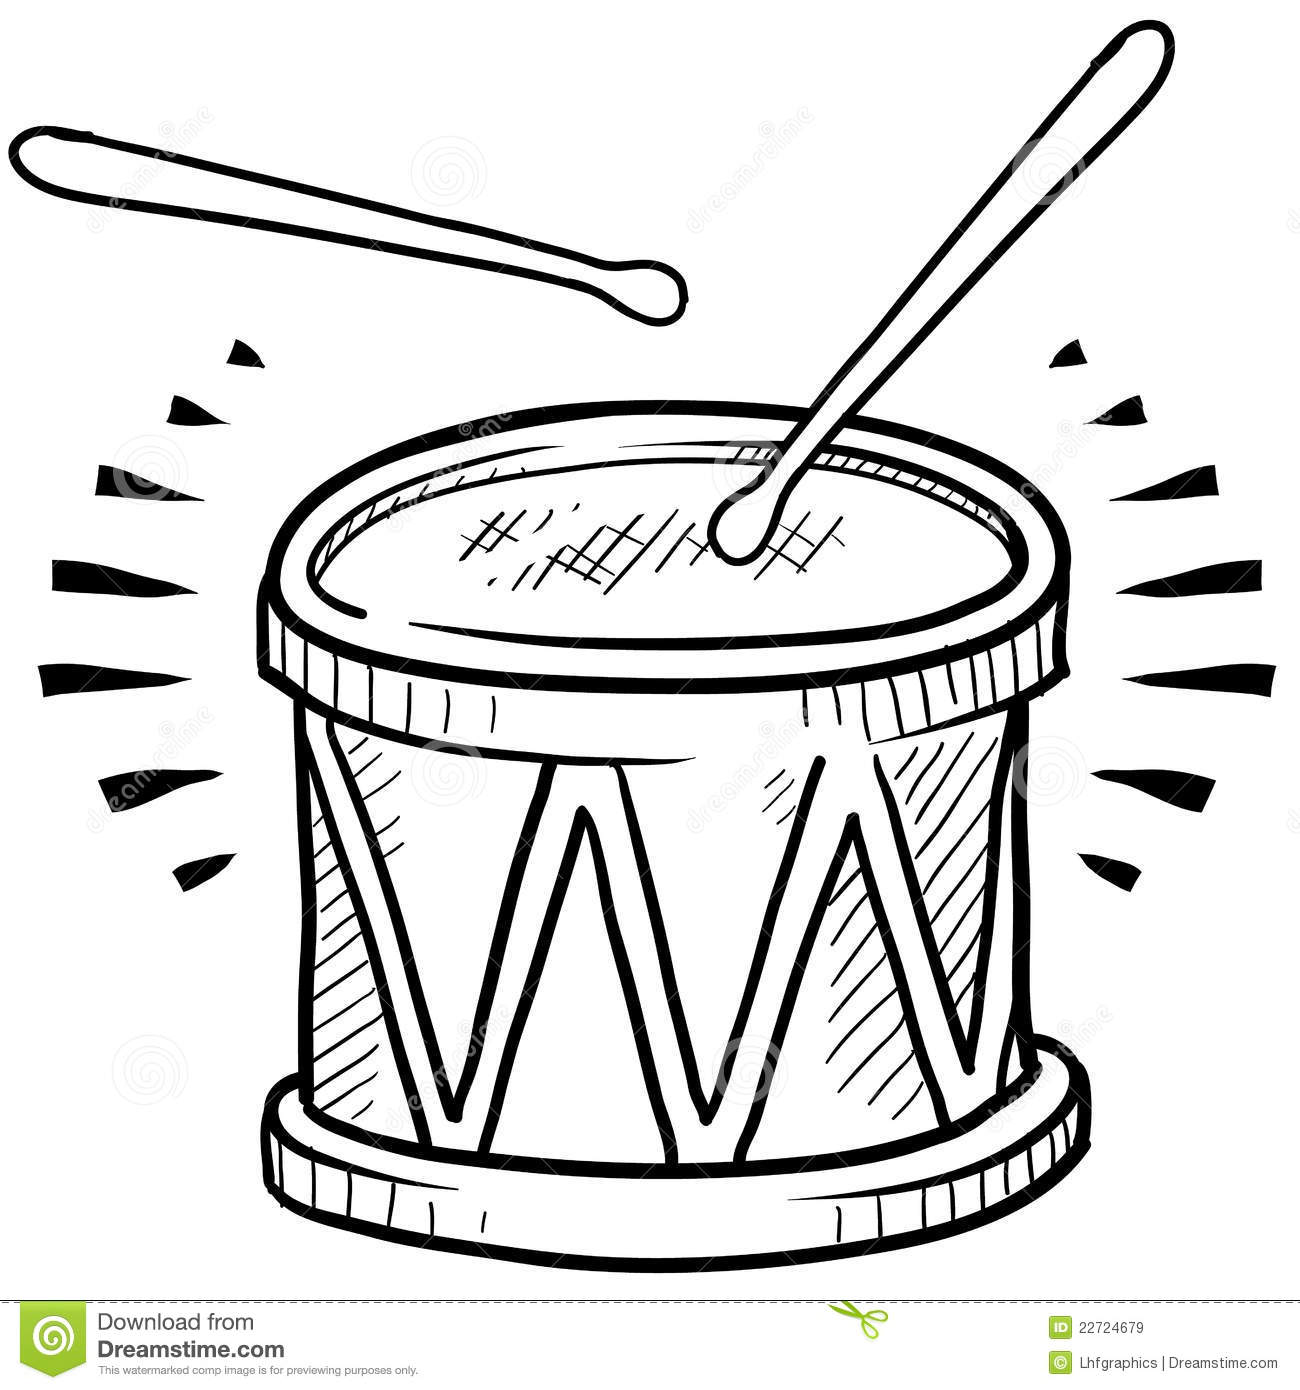 Royalty Free Stock Images Drum Sketch Image22724679 together with School Bus Silhouette moreover Pen in addition Apple3 in addition Volkswagen Bus. on bus book